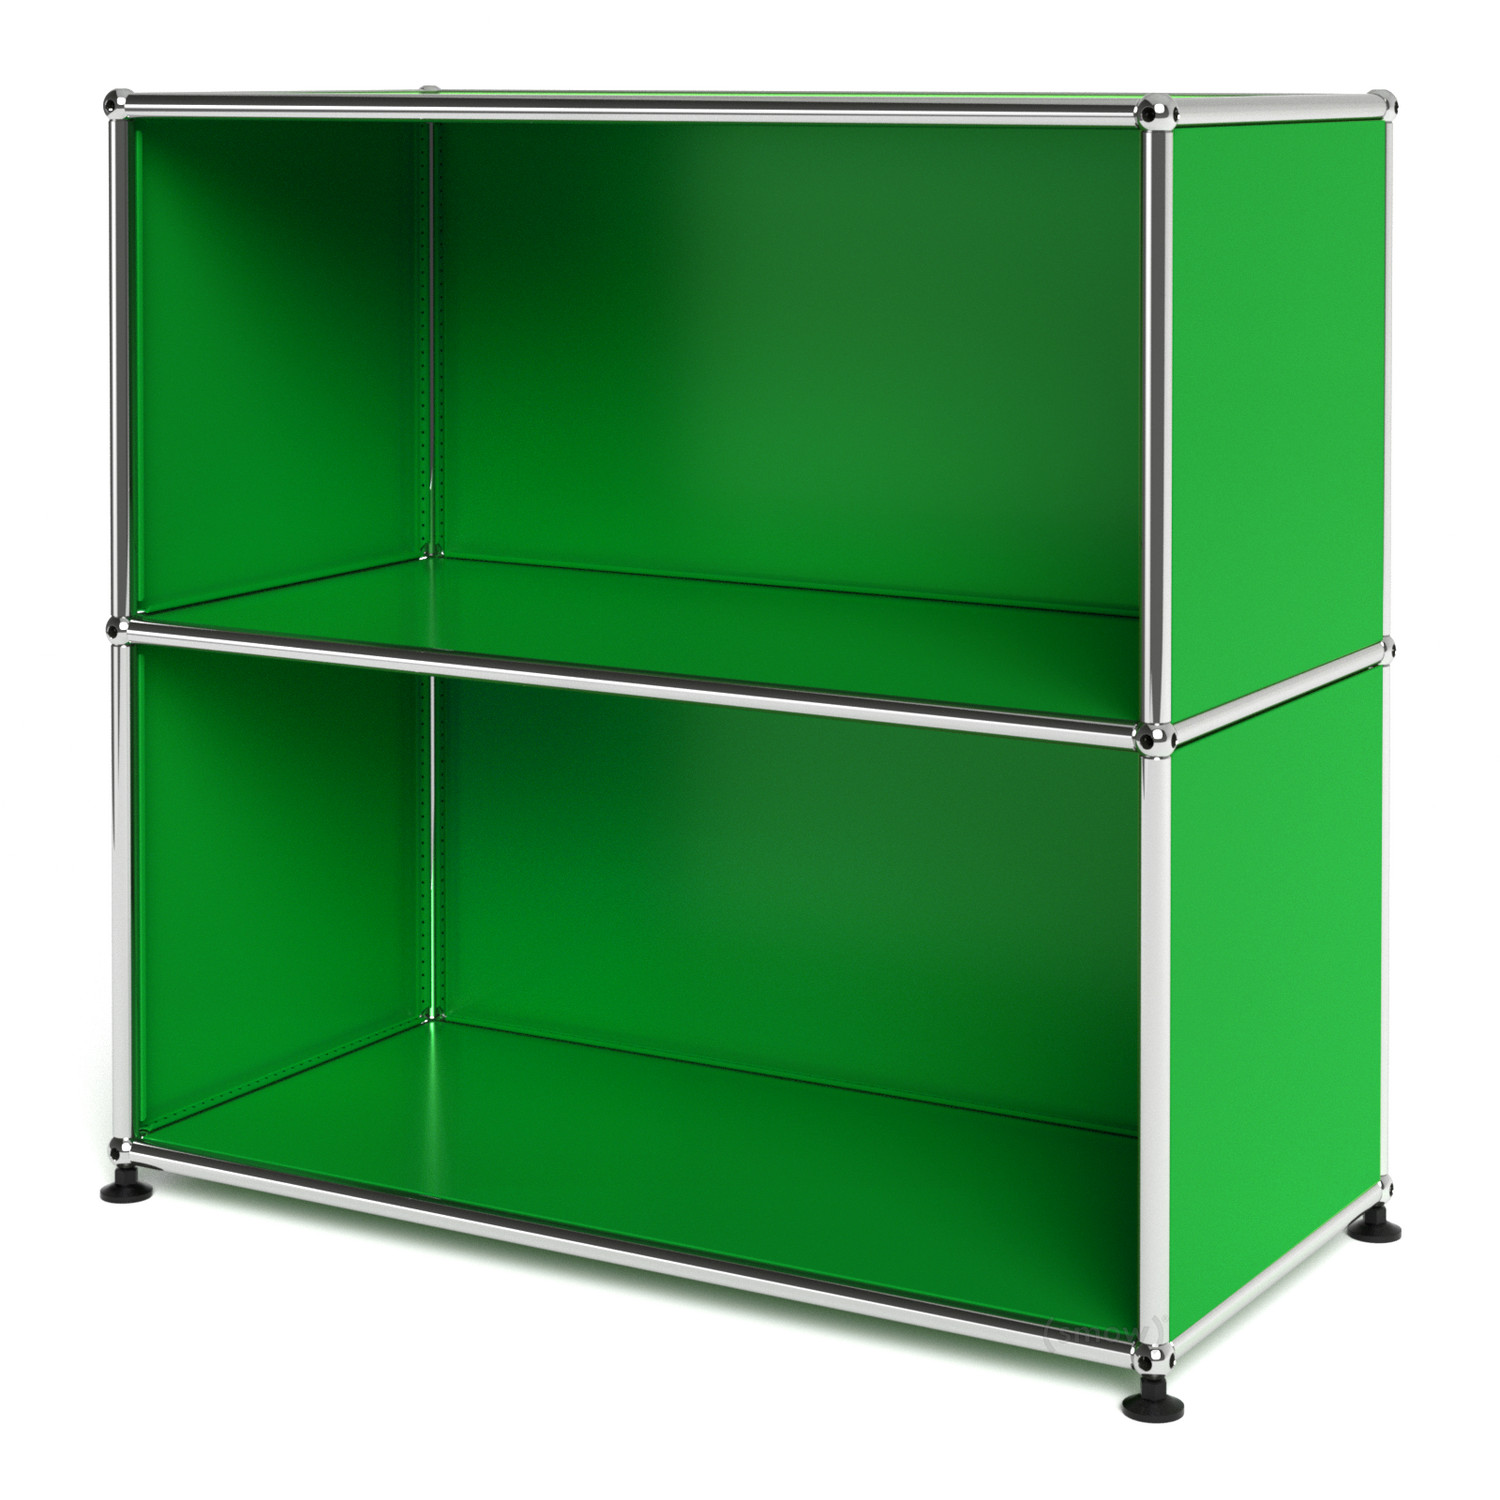 Usm haller sideboard m open usm green by fritz haller for Sideboard usm